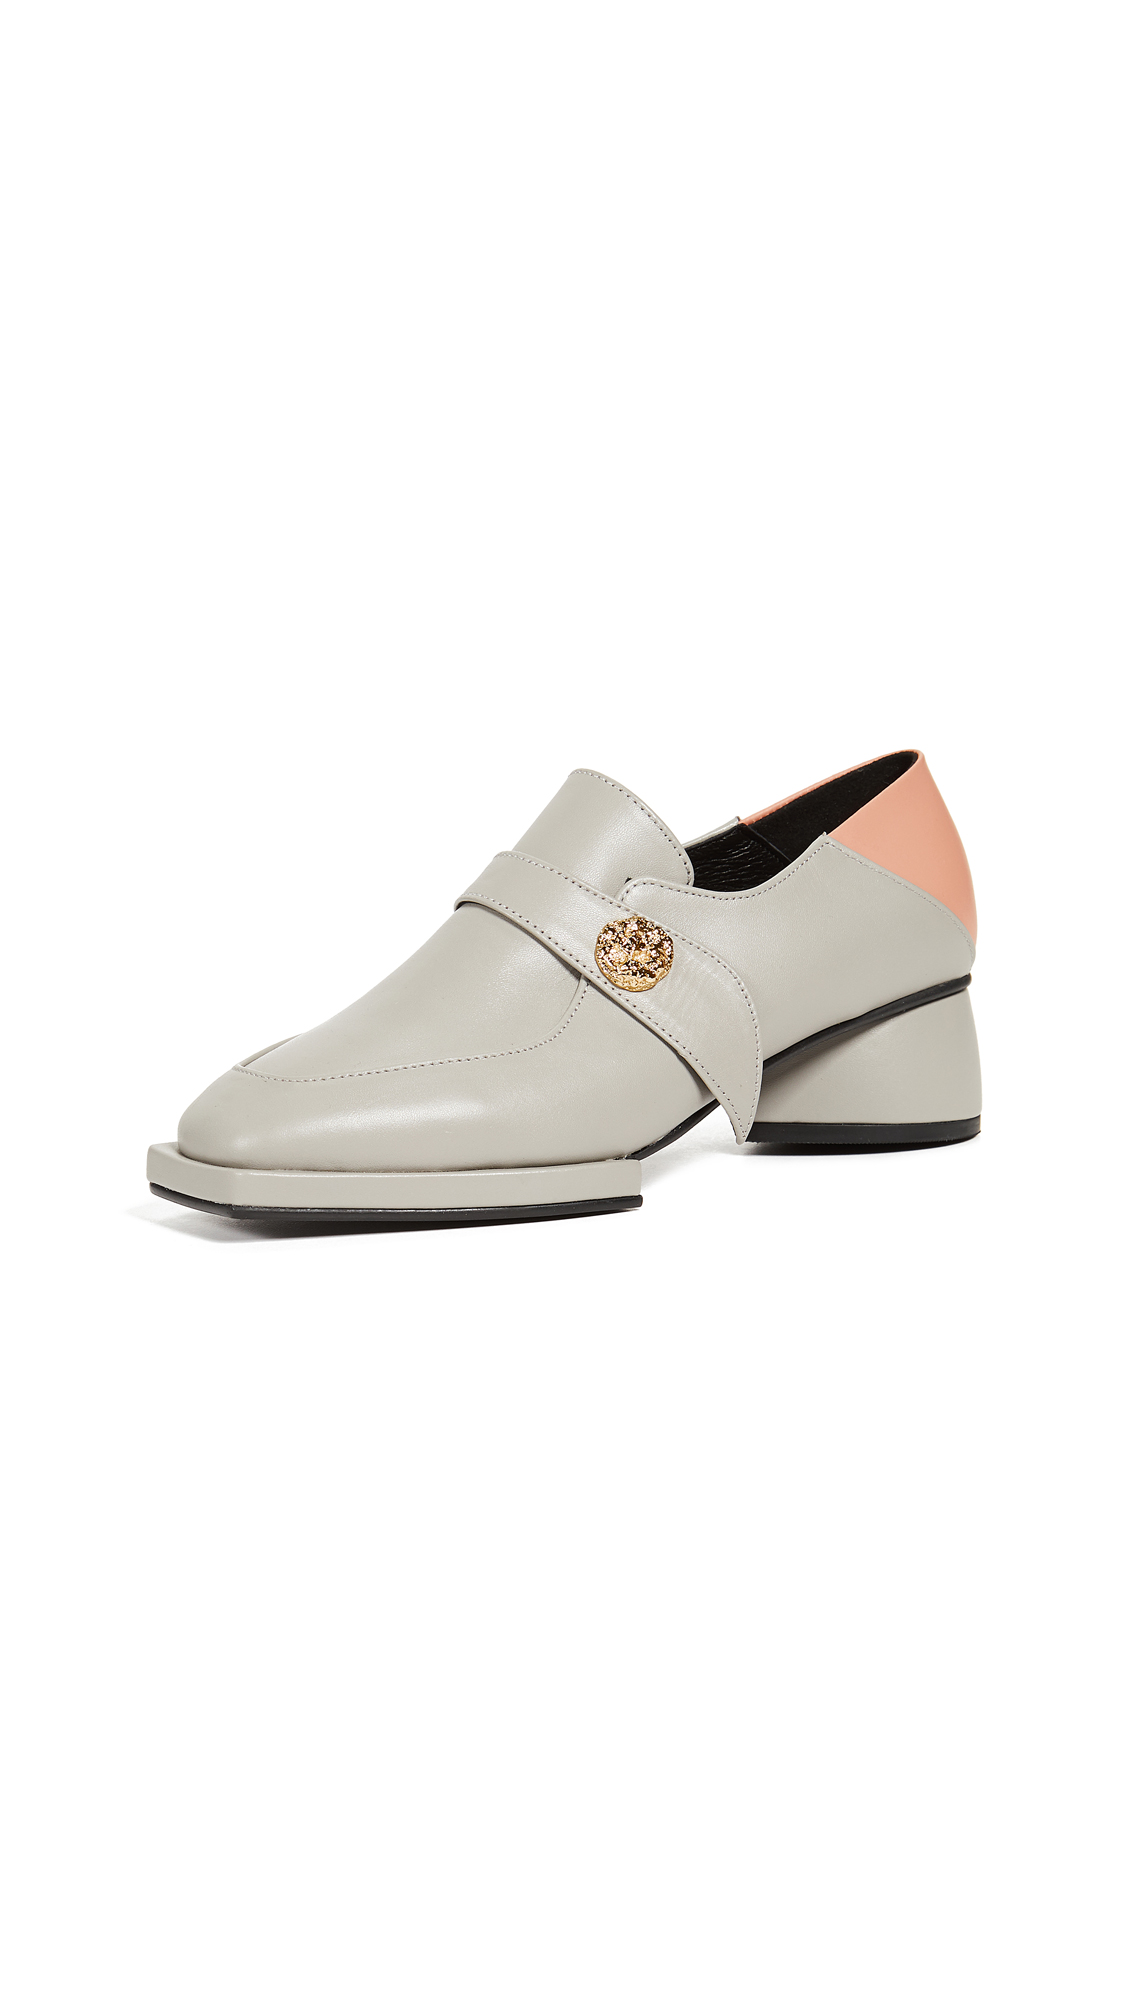 Reike Nen Convertible Loafers - Light Grey/Coral